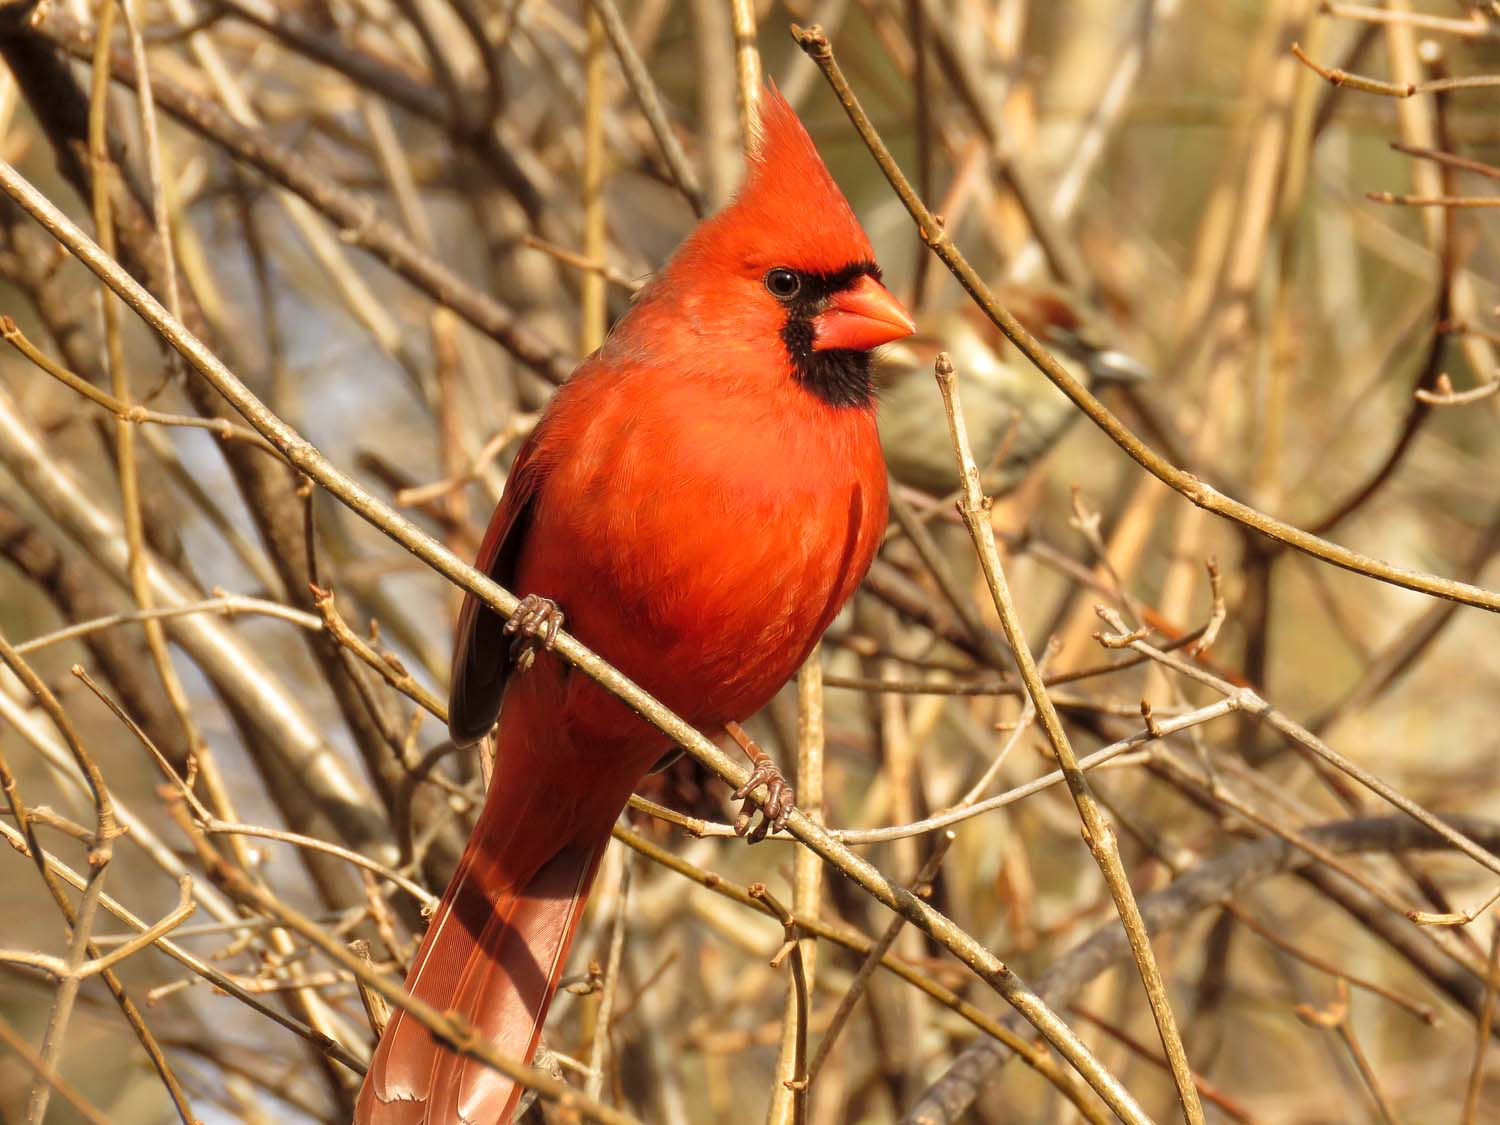 Northern cardinal, March 13, 2018